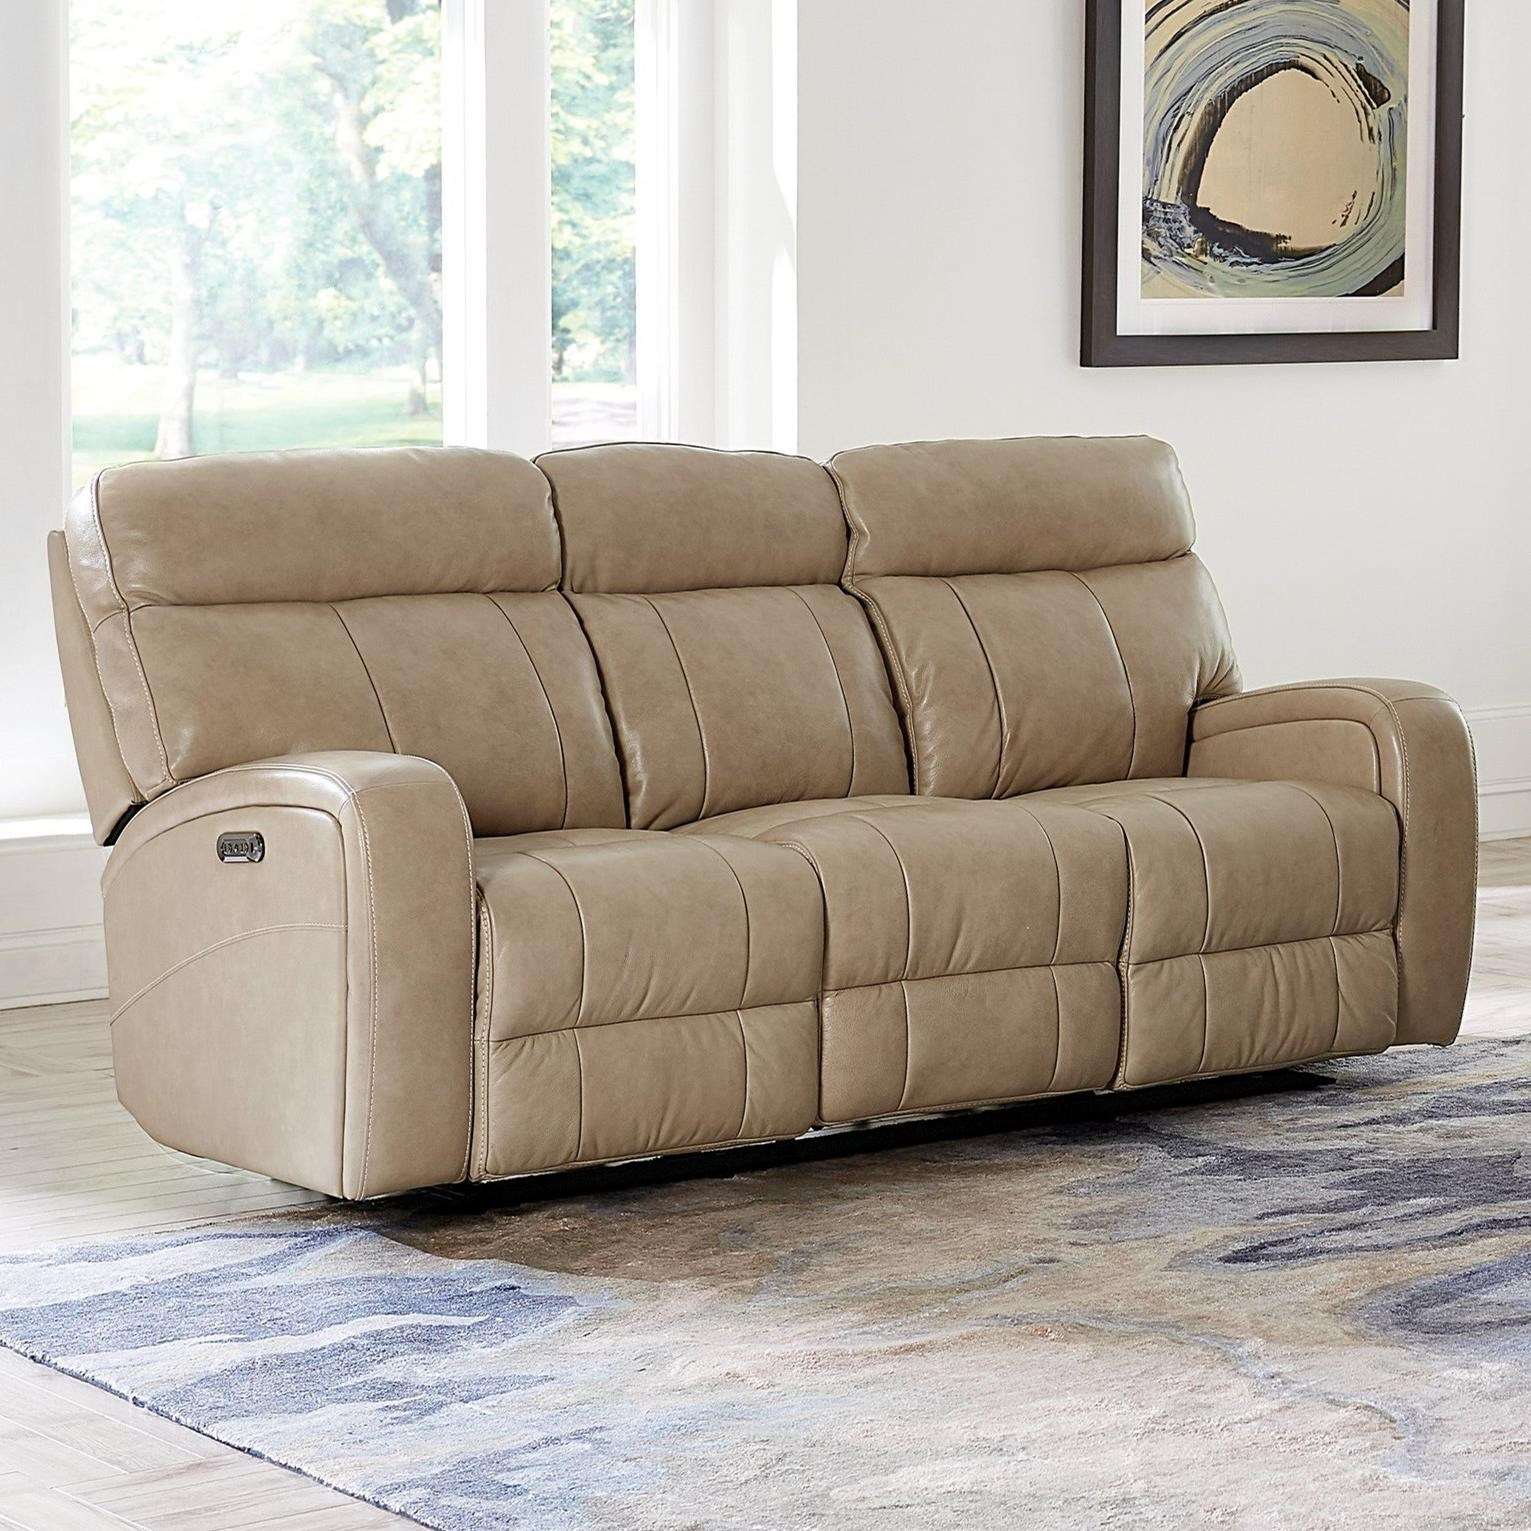 Bassett Club Level Beaumont 3717 P62a Power Reclining Sofa With Usb Charging Ports Becker Furniture Reclining Sofas